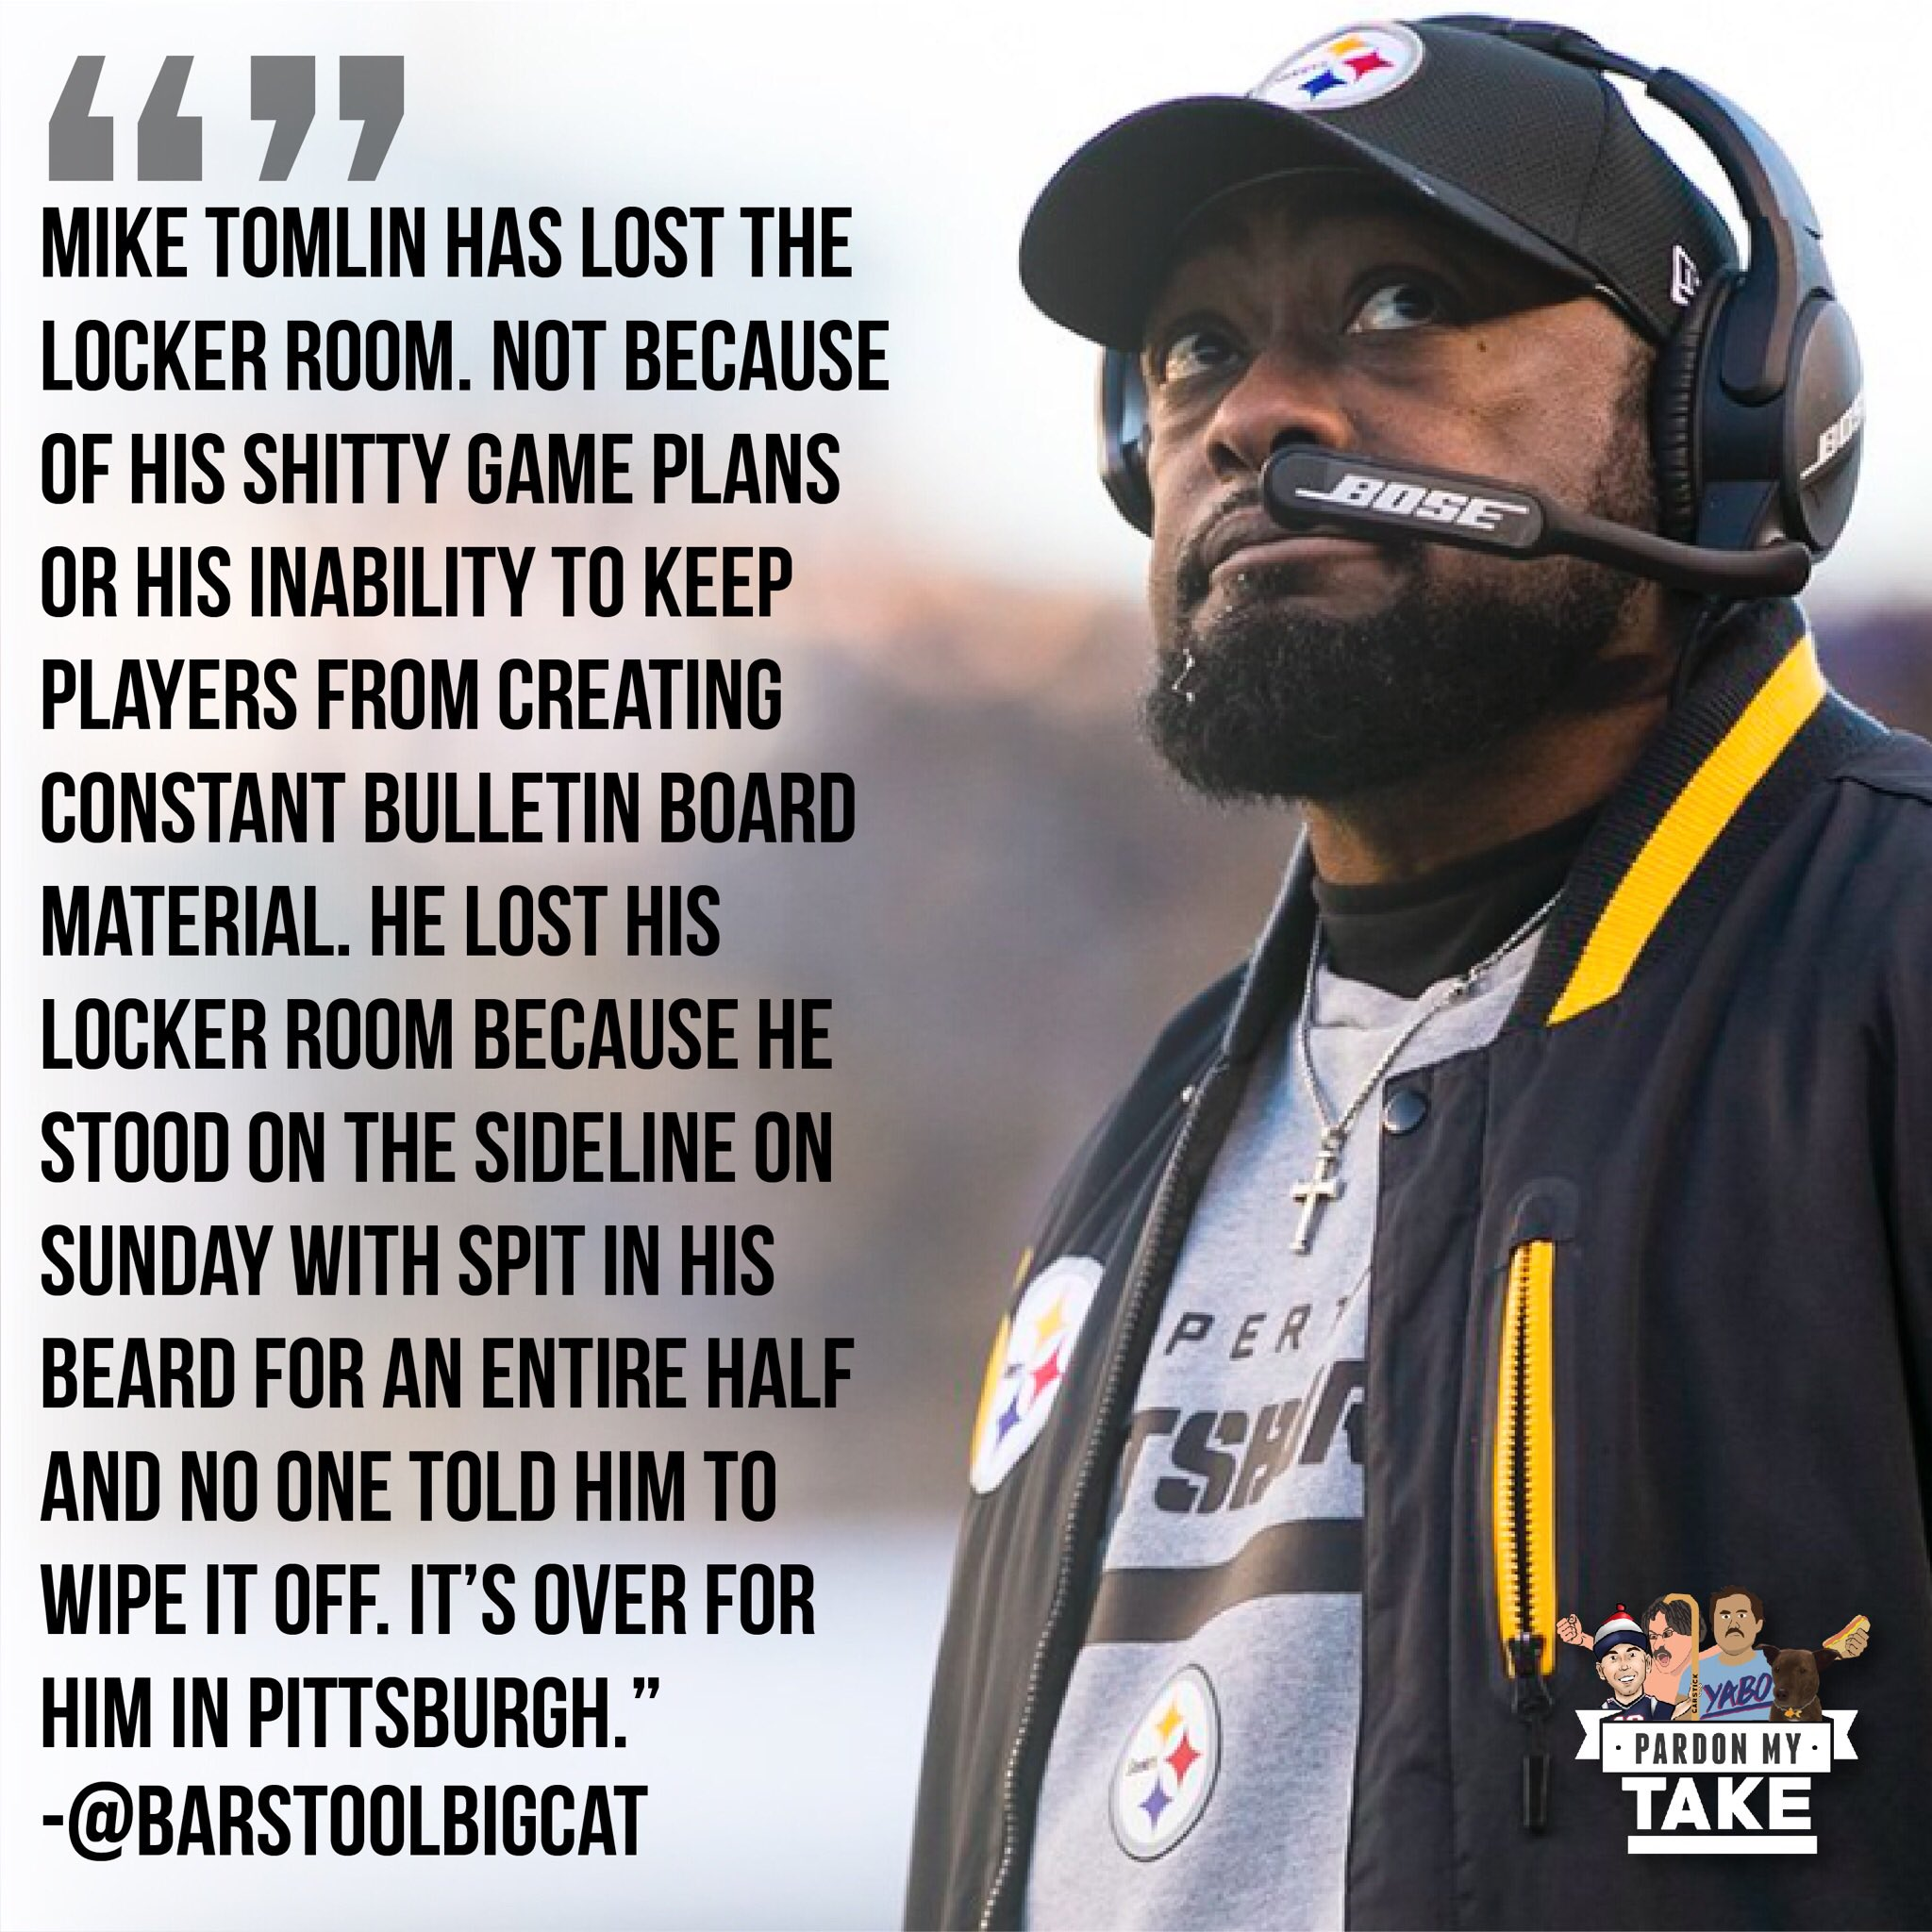 Mike Tomlin is on the hot seat solely based on the spit he had on his beard yesterday. He's lost the team https://t.co/nMfMA3dS50